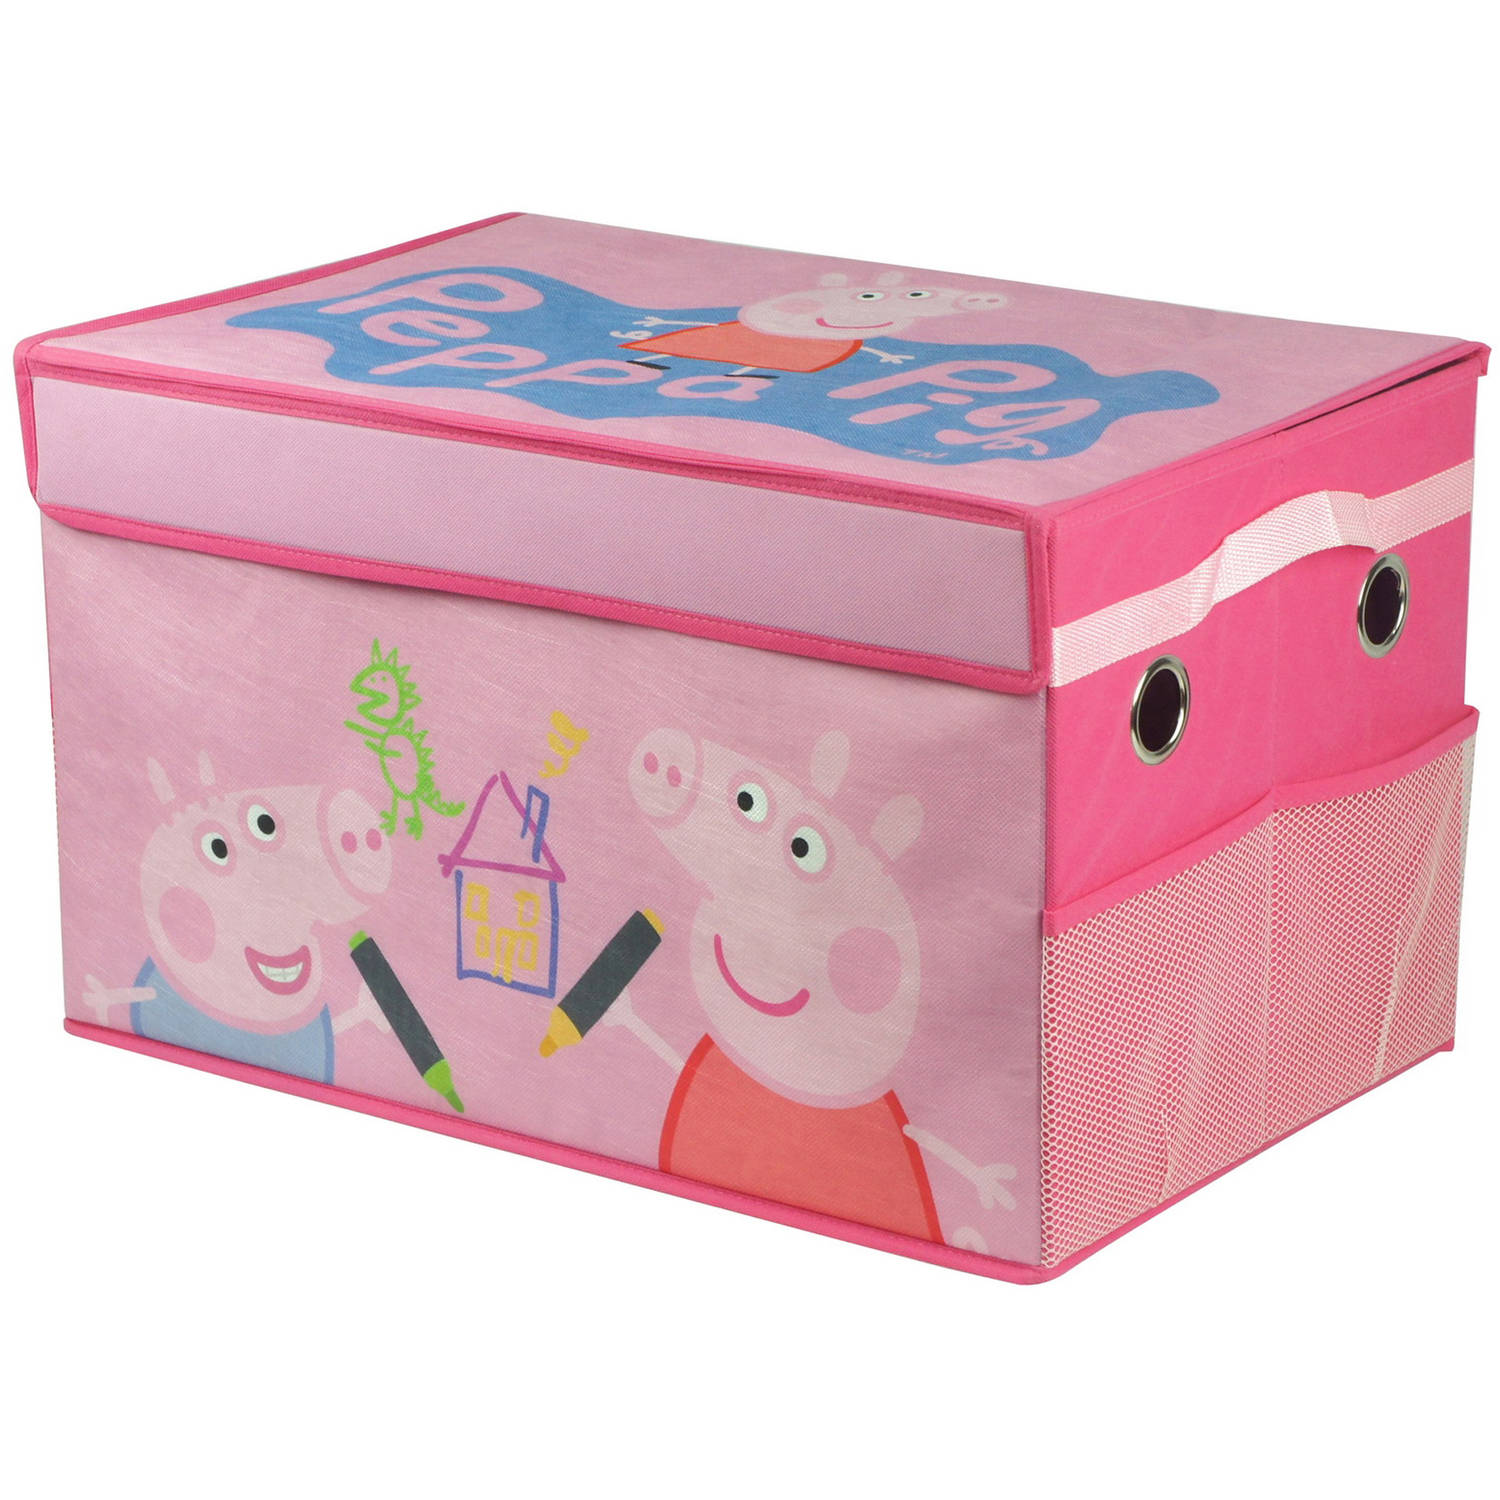 Peppa Pig Collapsible Toy Storage Trunk   Walmart.com